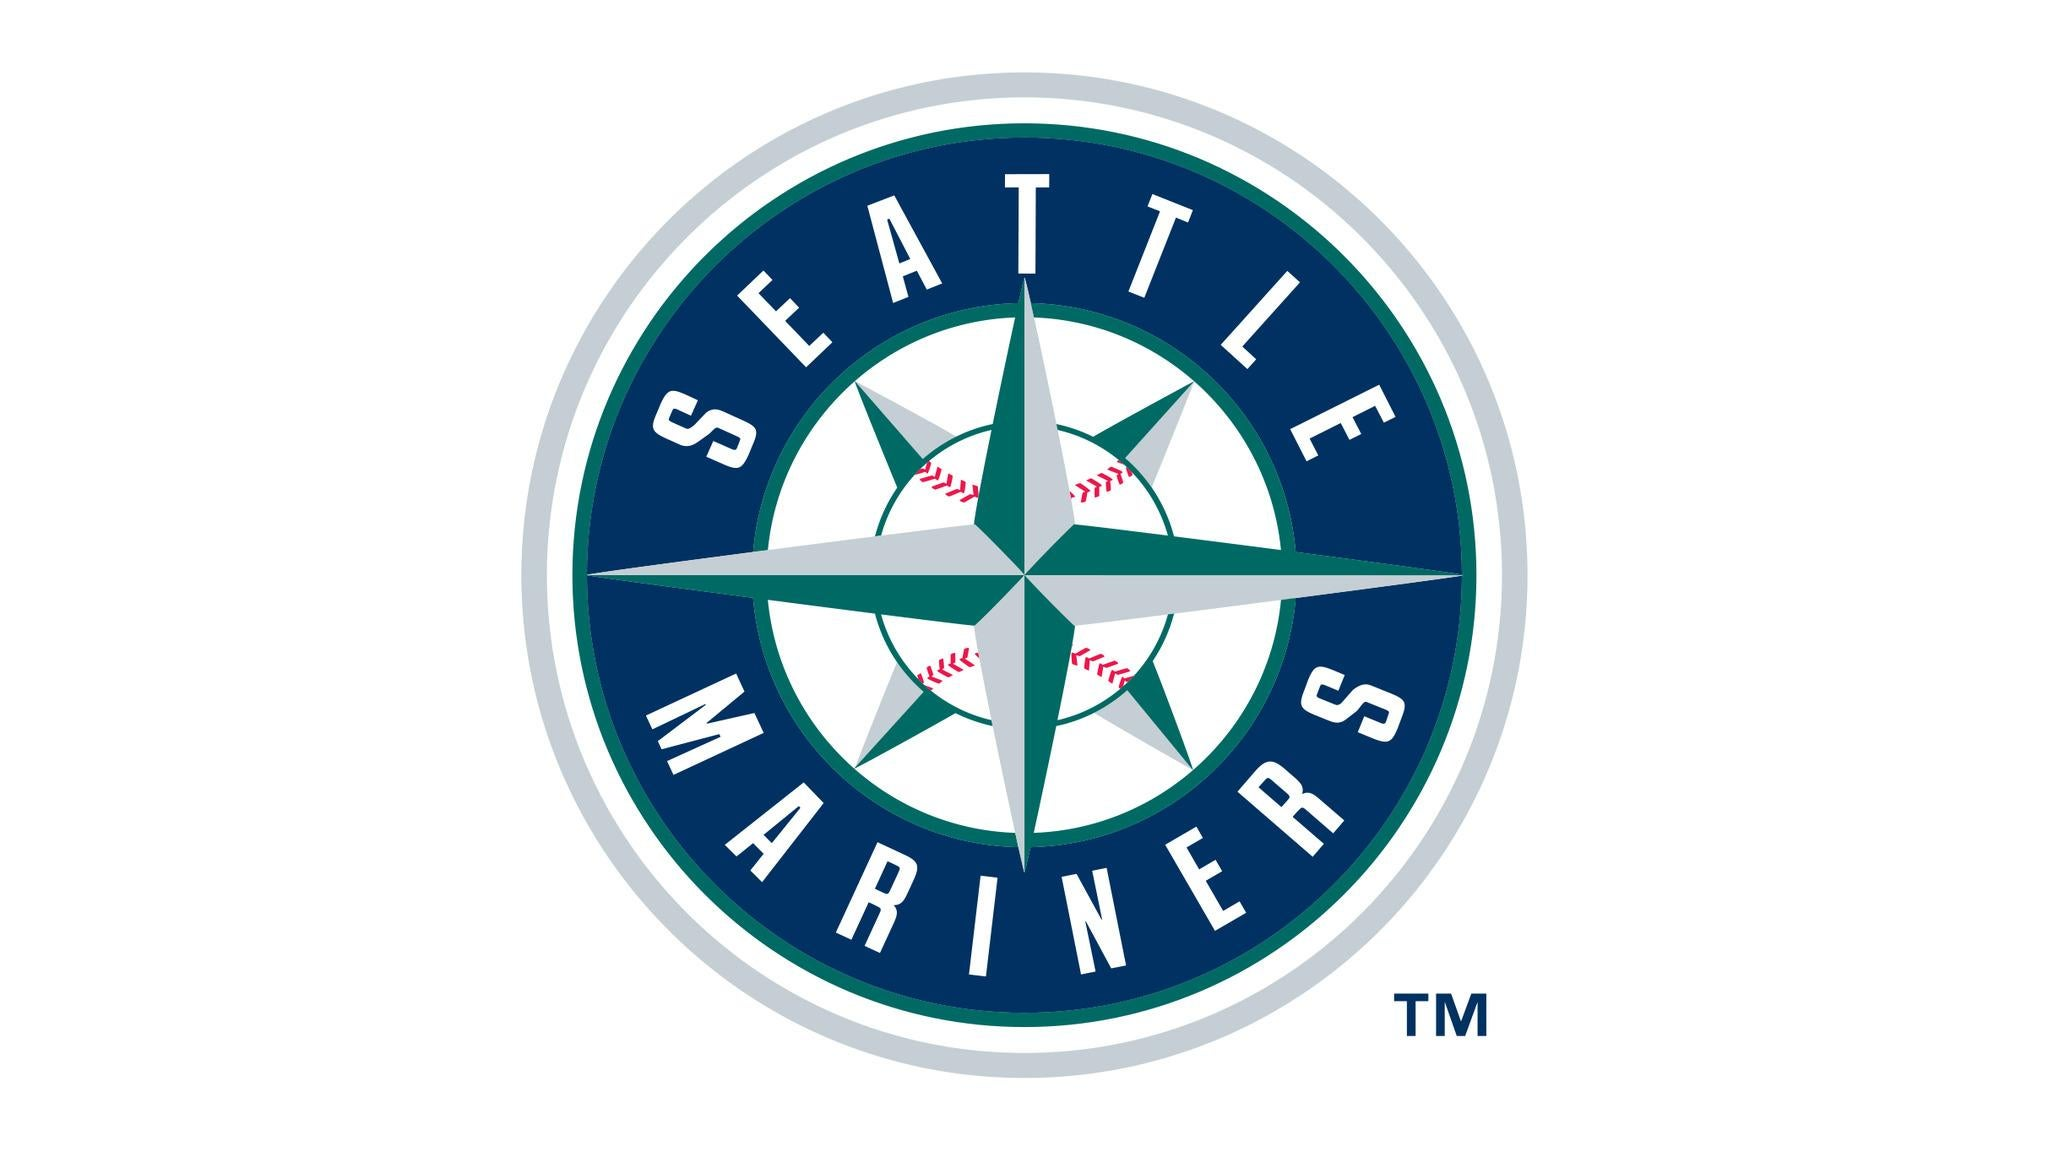 Seattle Mariners vs. Boston Red Sox at Safeco Field